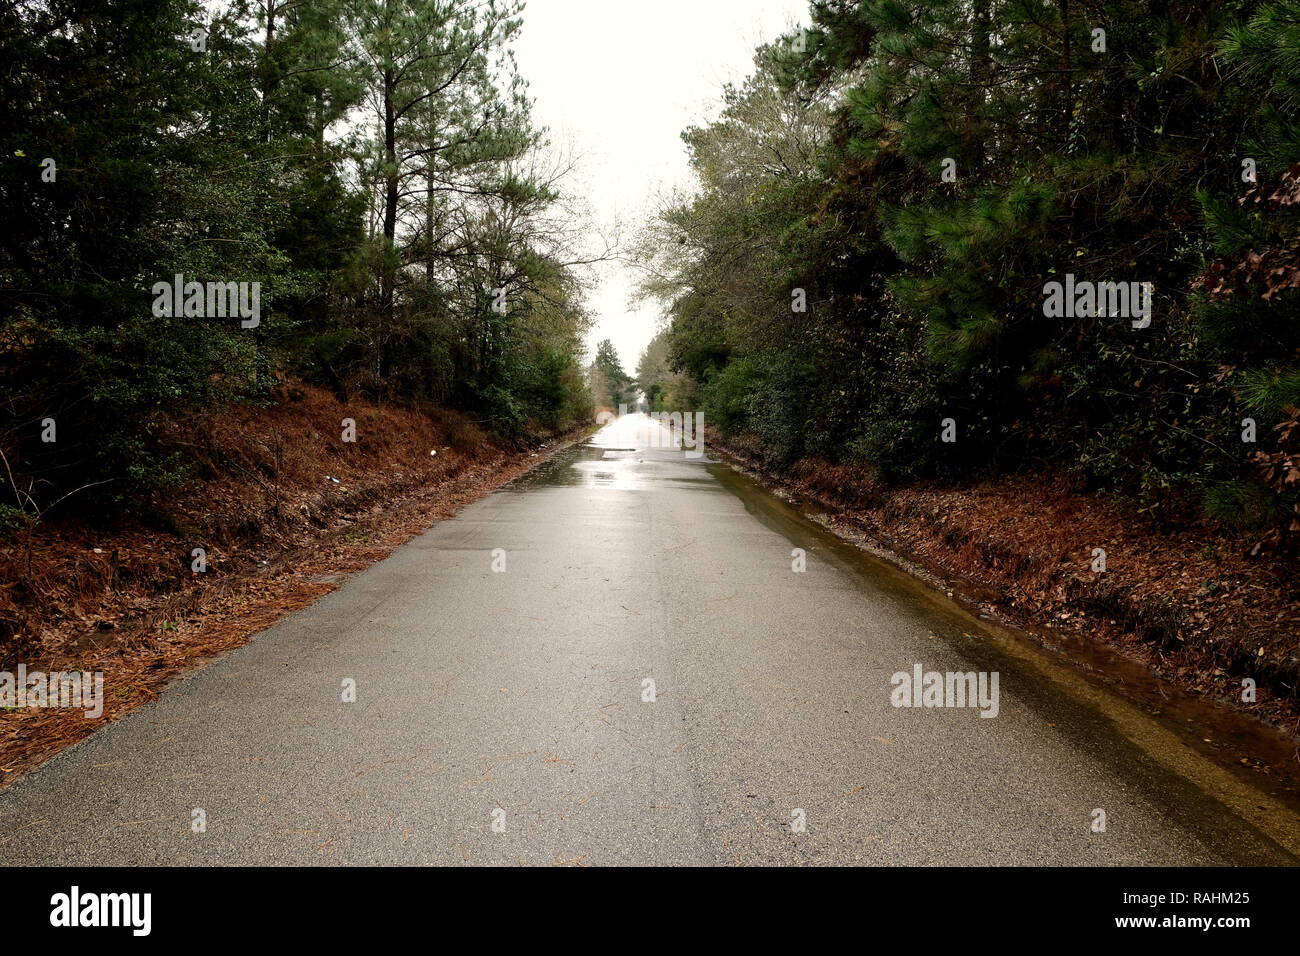 Empty country road in Texas surrounded by trees; pines, oaks; wet road after a rain fall. - Stock Image